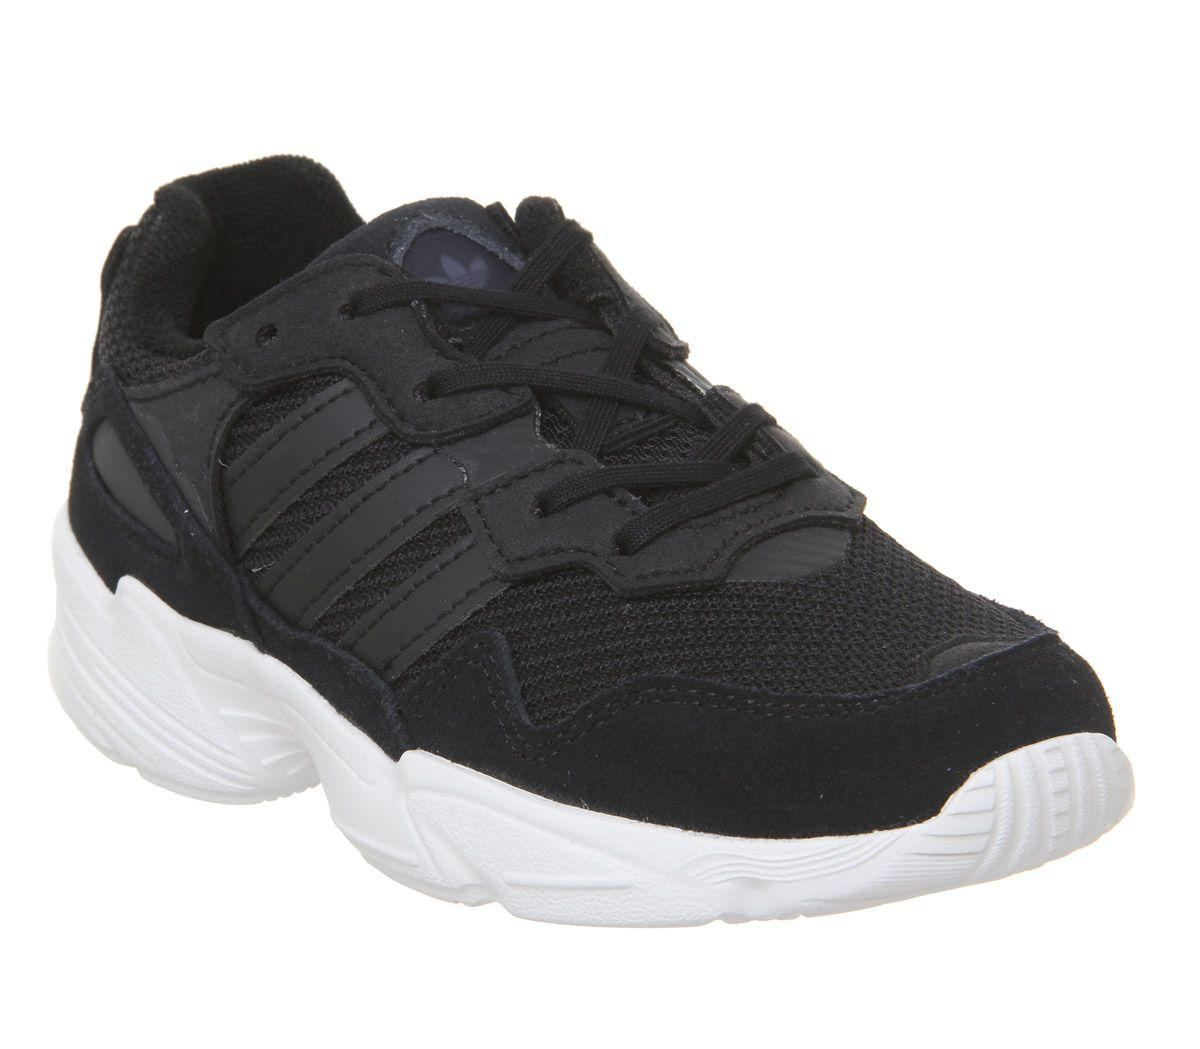 new product be7b0 176f4 adidas Yung 96 10-2 Trainers in Black for Men - Lyst